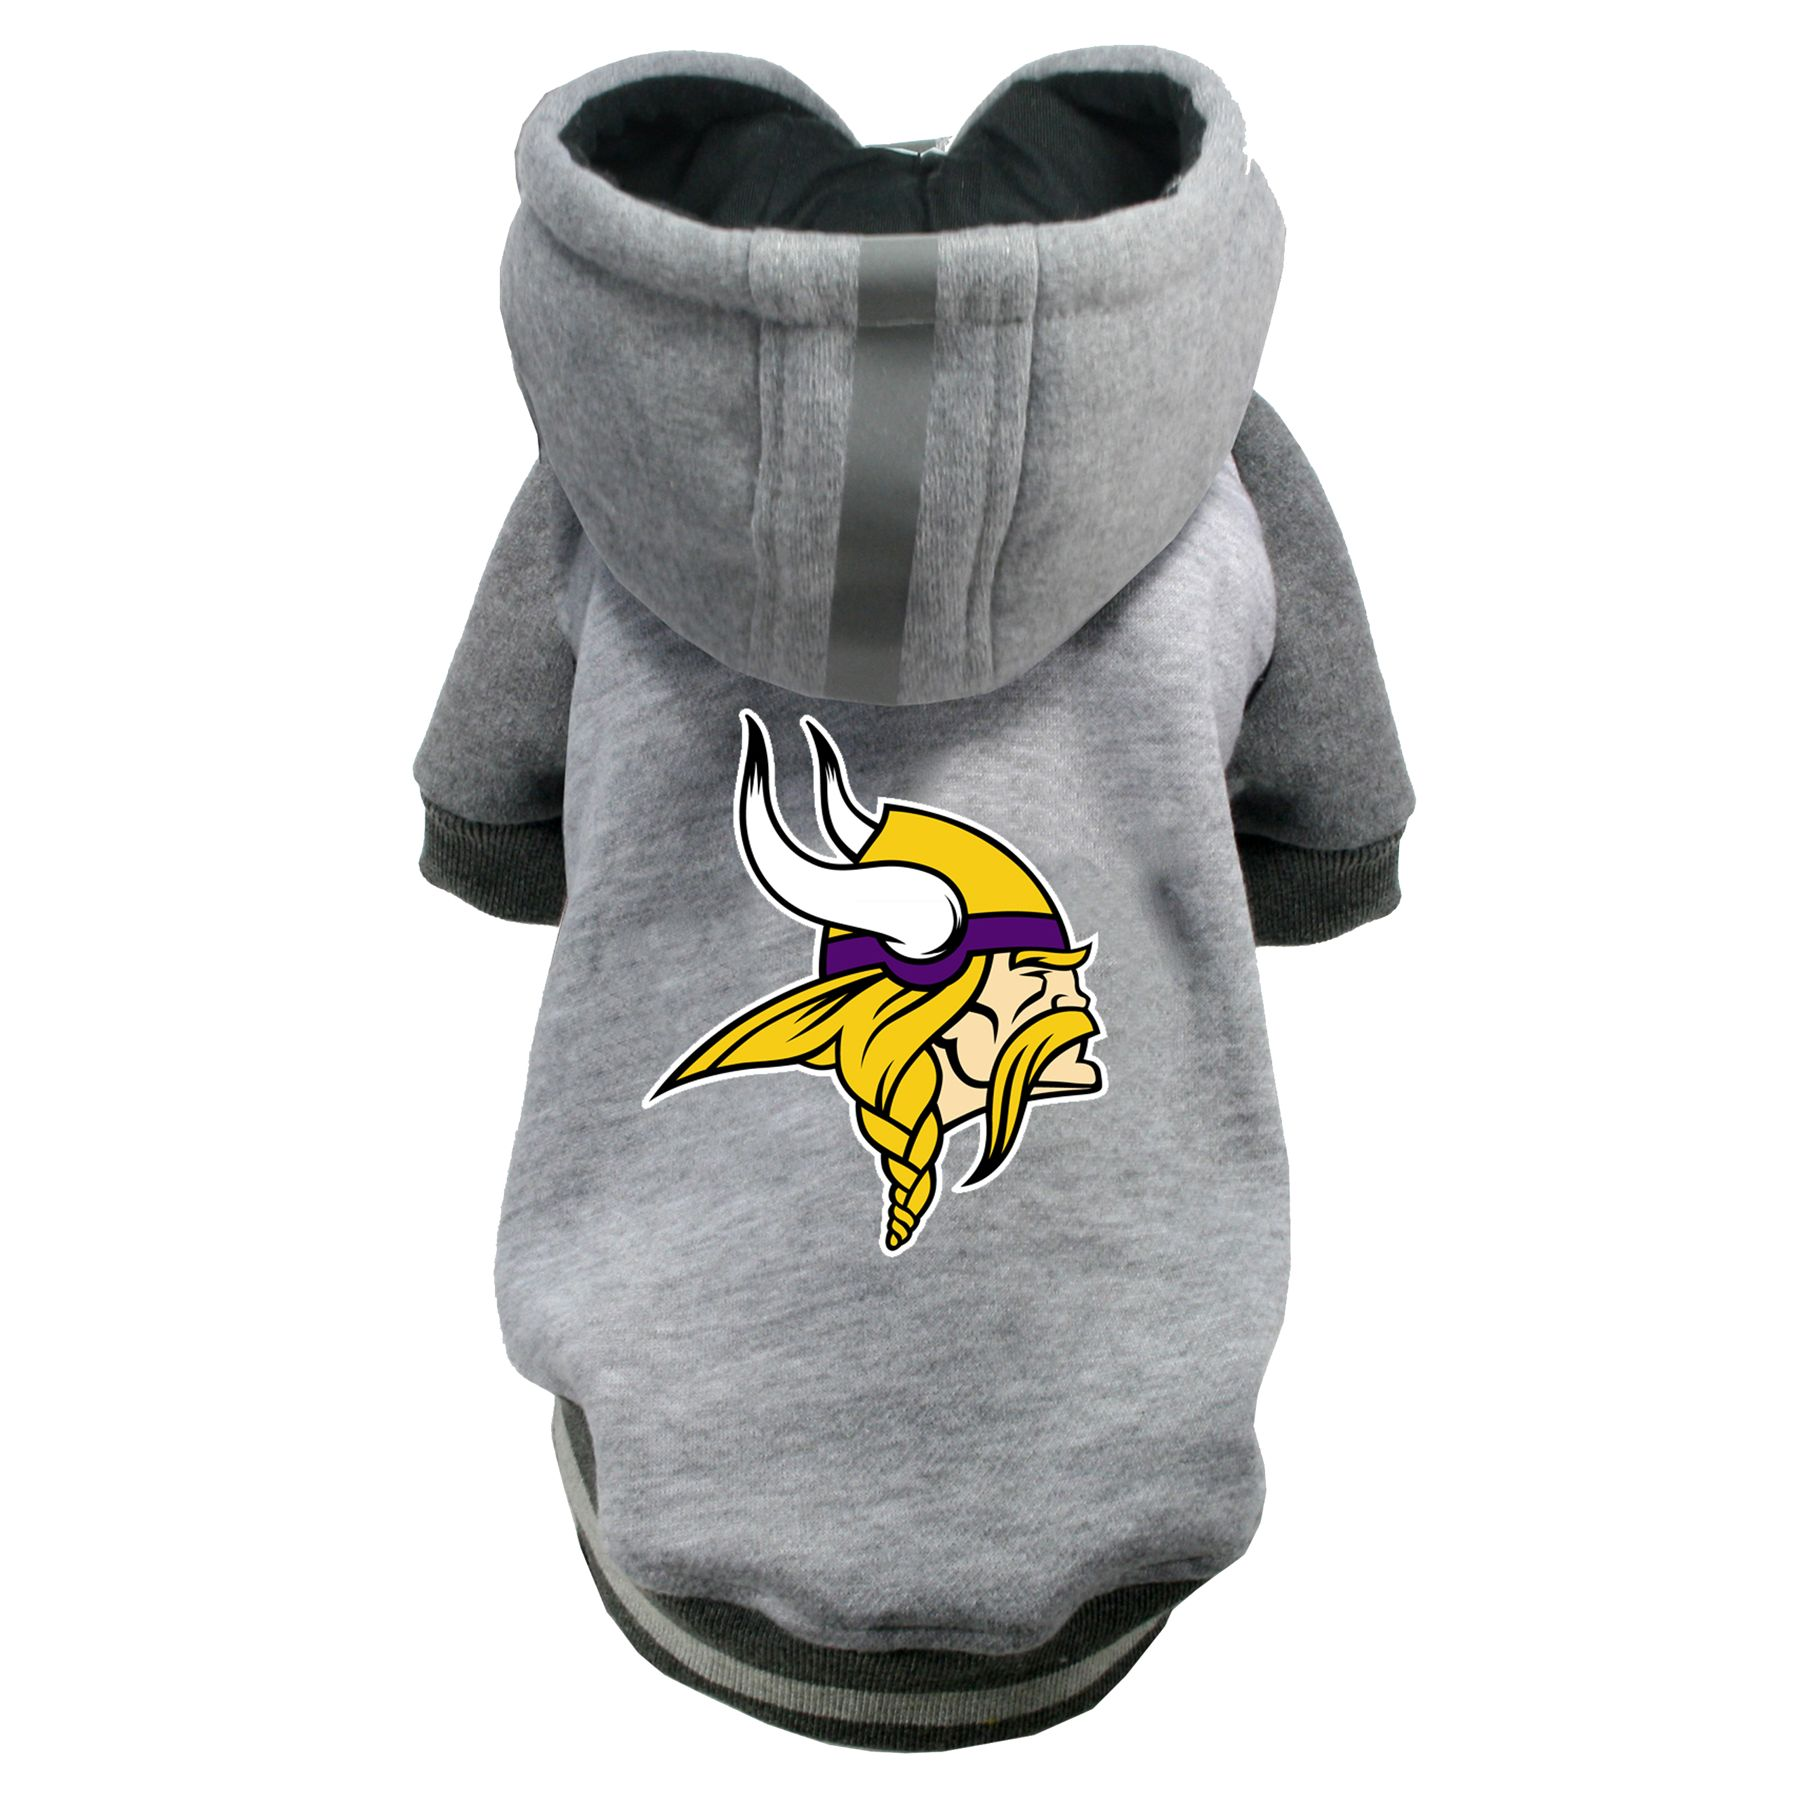 Minnesota Vikings NFL Hoodie size: 3X Large, Hip Doggie photo